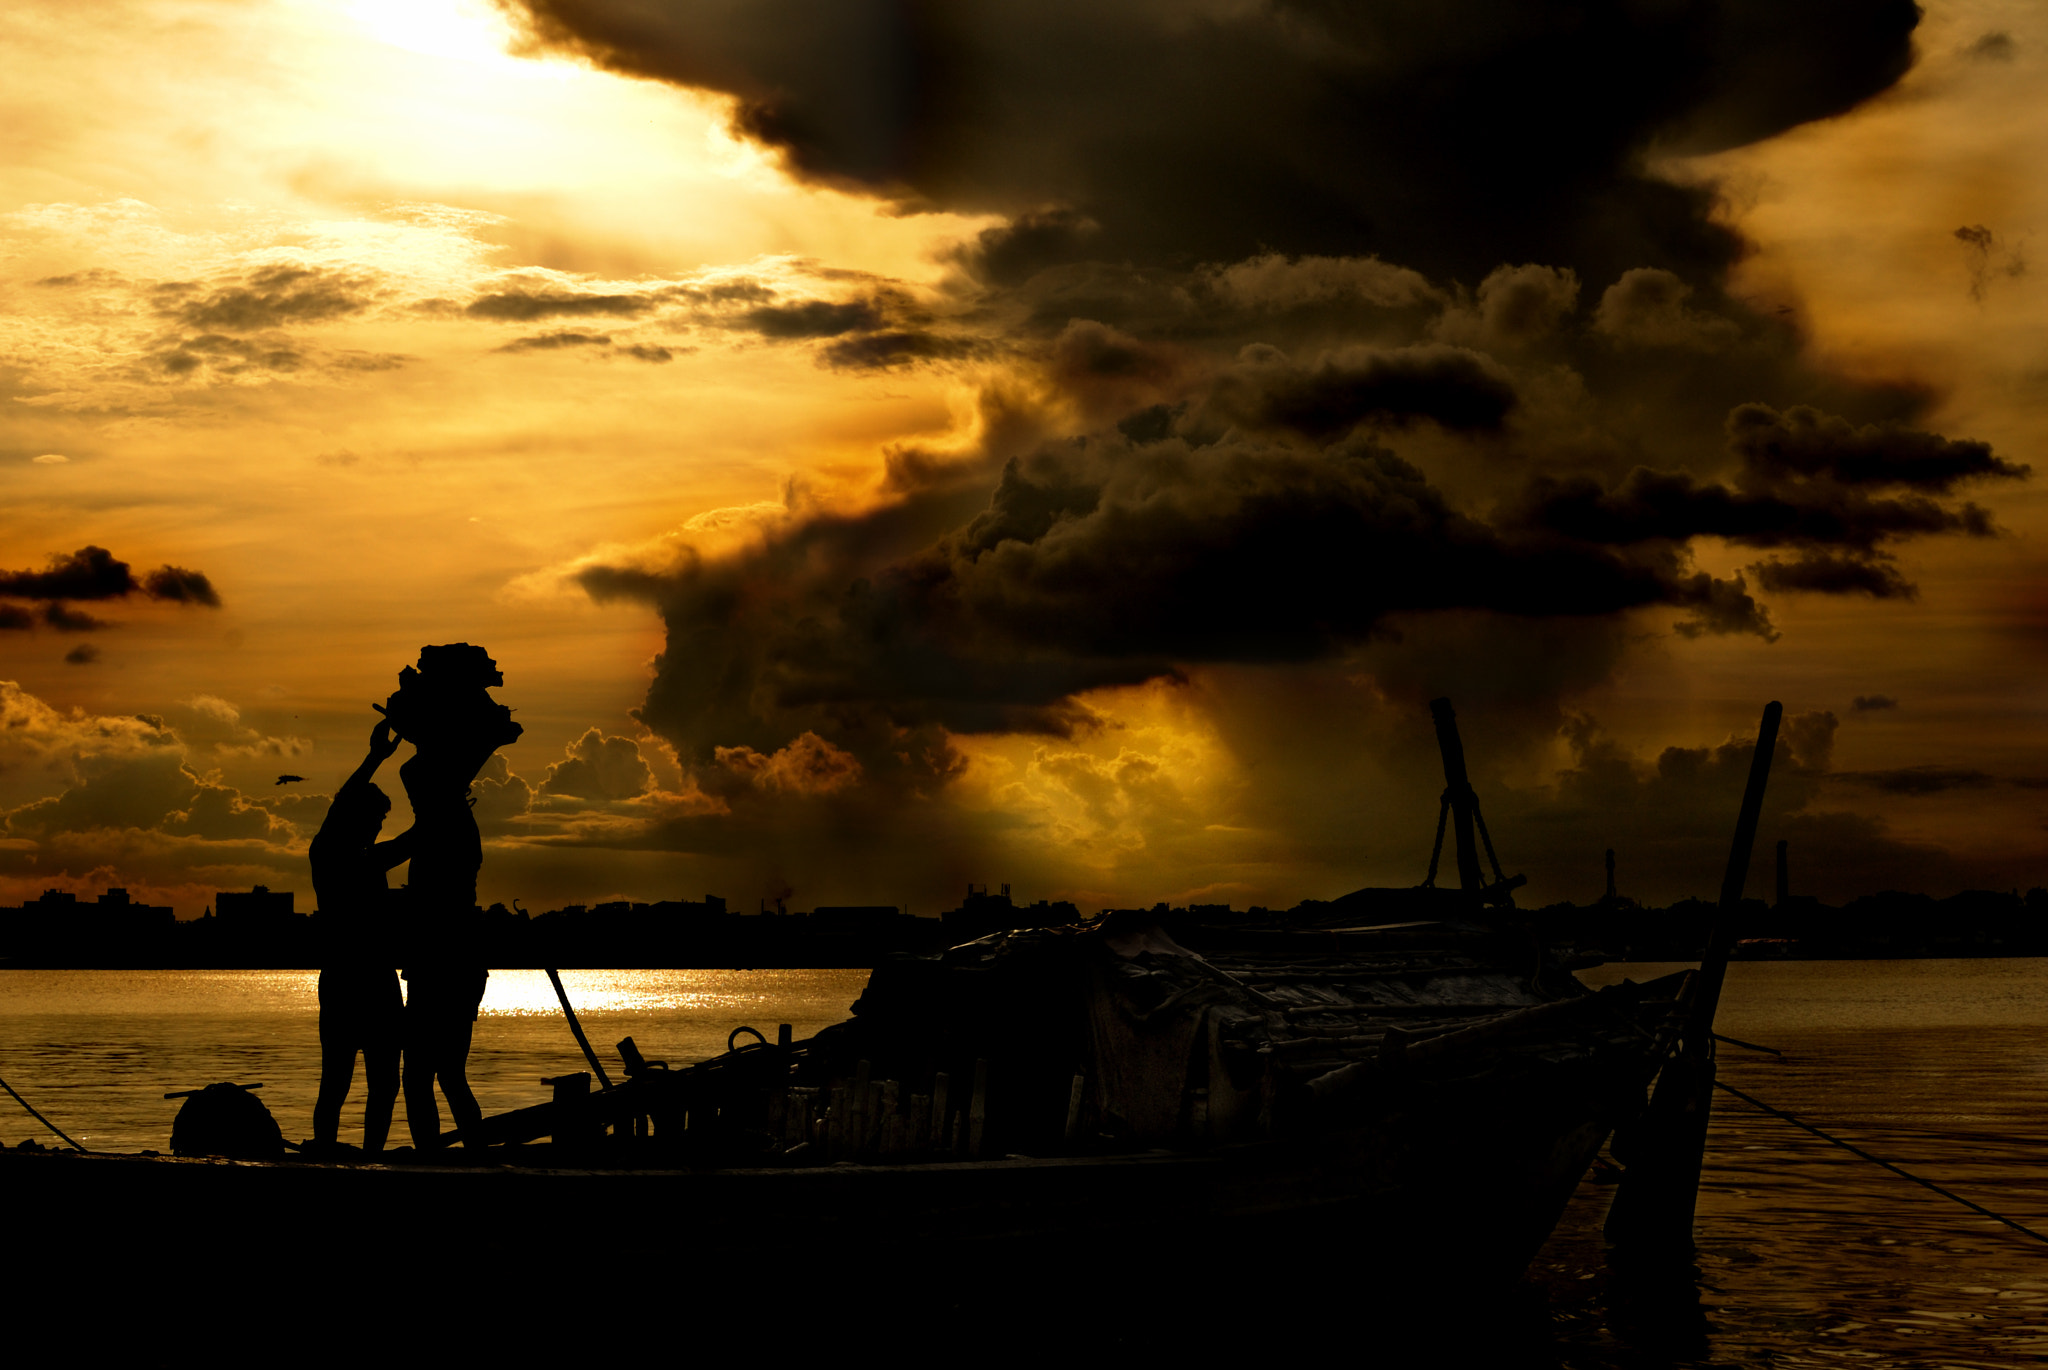 Photograph We are not done yet by Supriya Bag on 500px